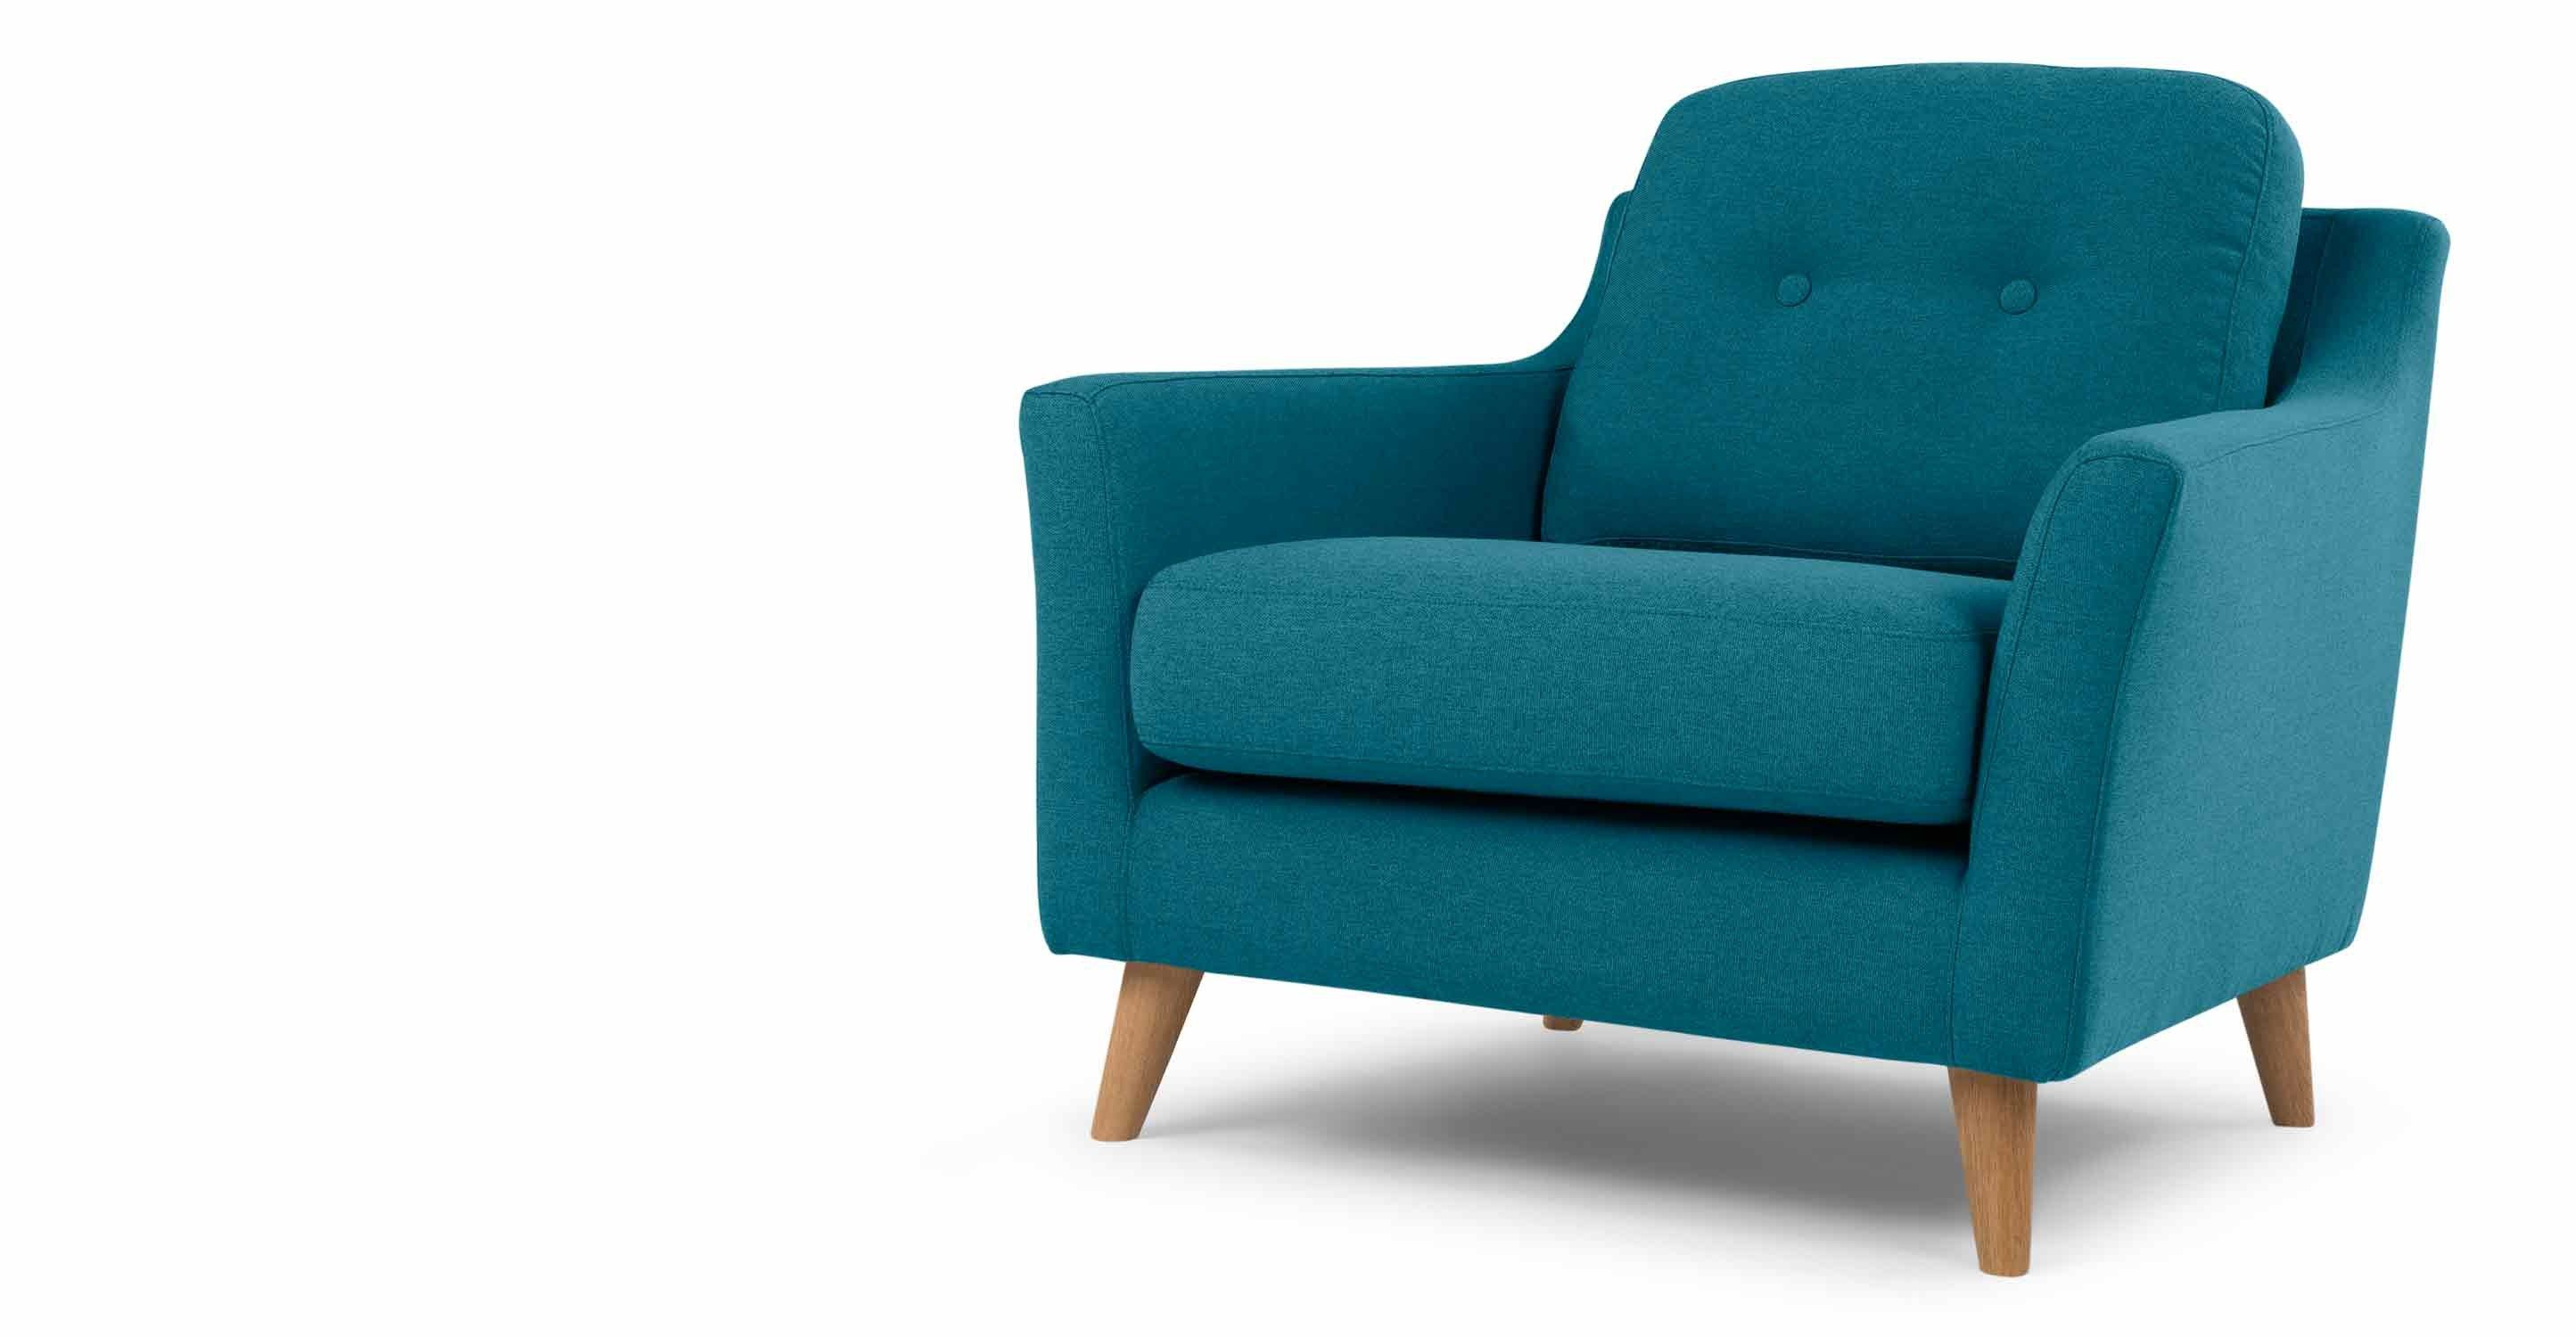 Made Sessel Blau Teal Couch Grey Armchair Yellow Armchair